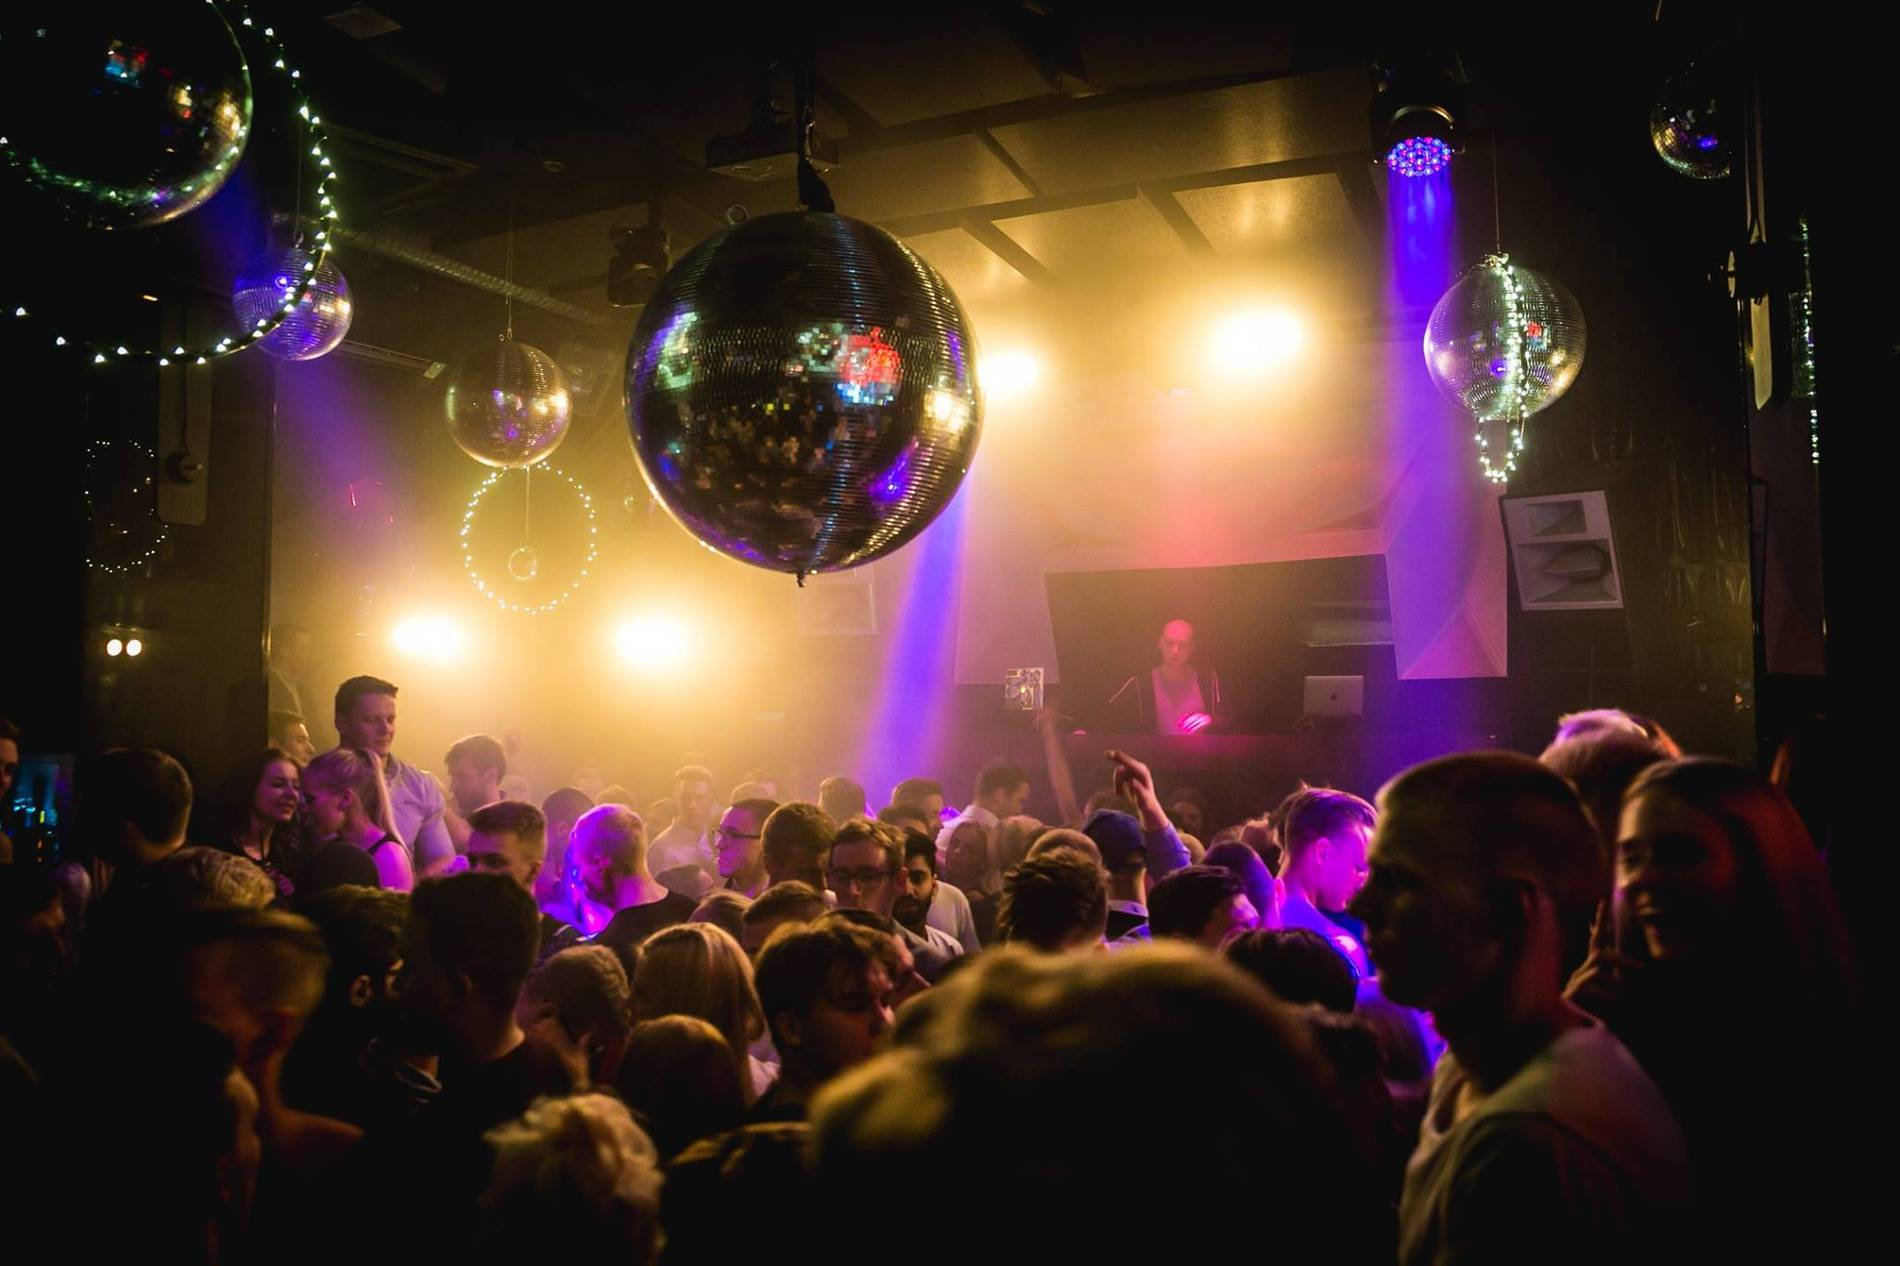 Nightclub event in the Club Studio in Tallinn, Estonia